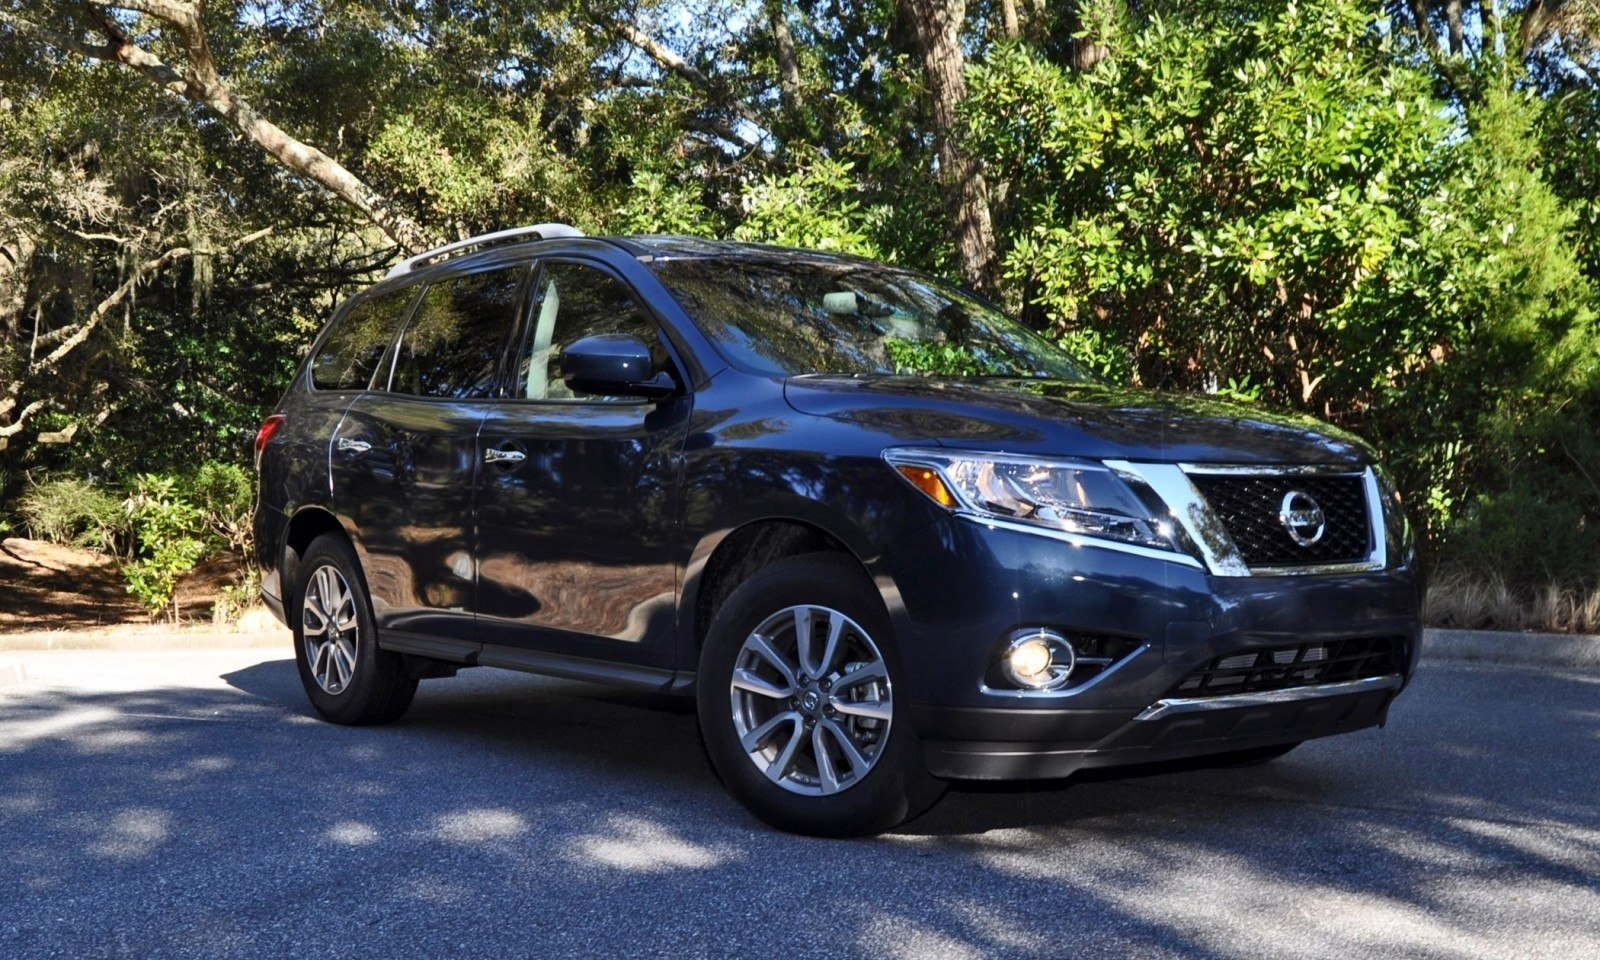 Road Test Review - 2015 Nissan Pathfinder SV 4WD 127